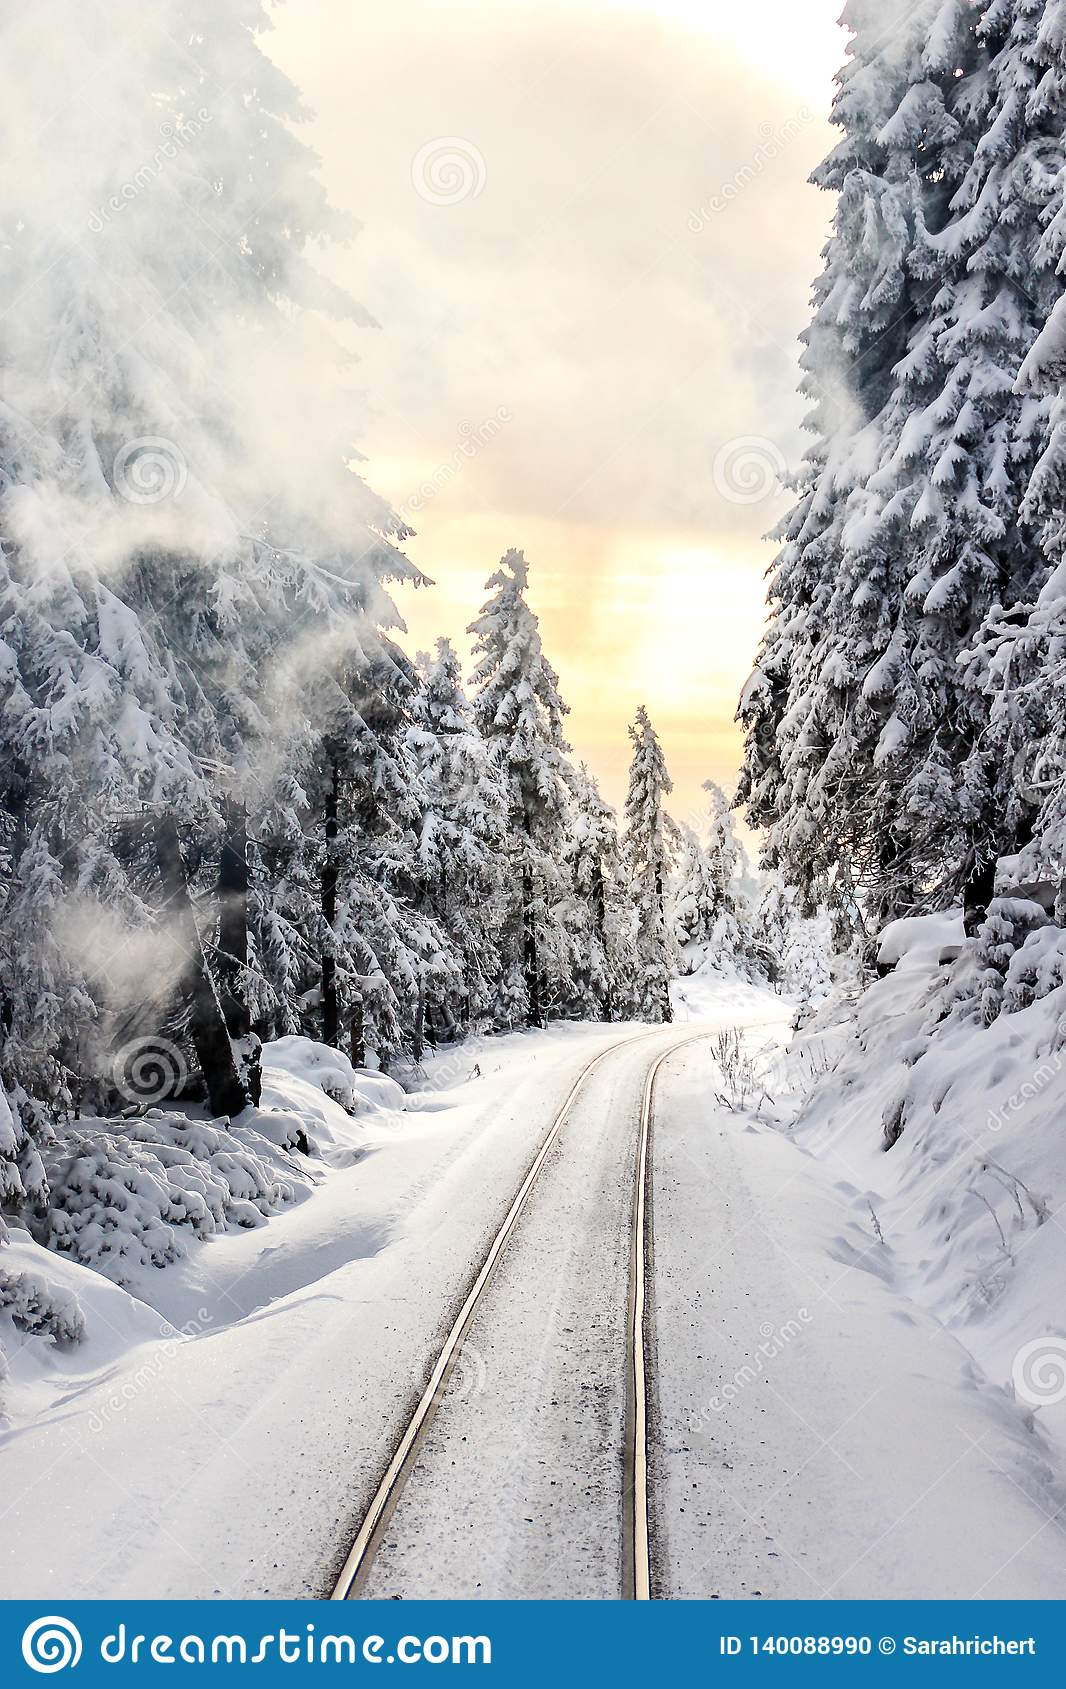 Railways in the snowy forest at sunset